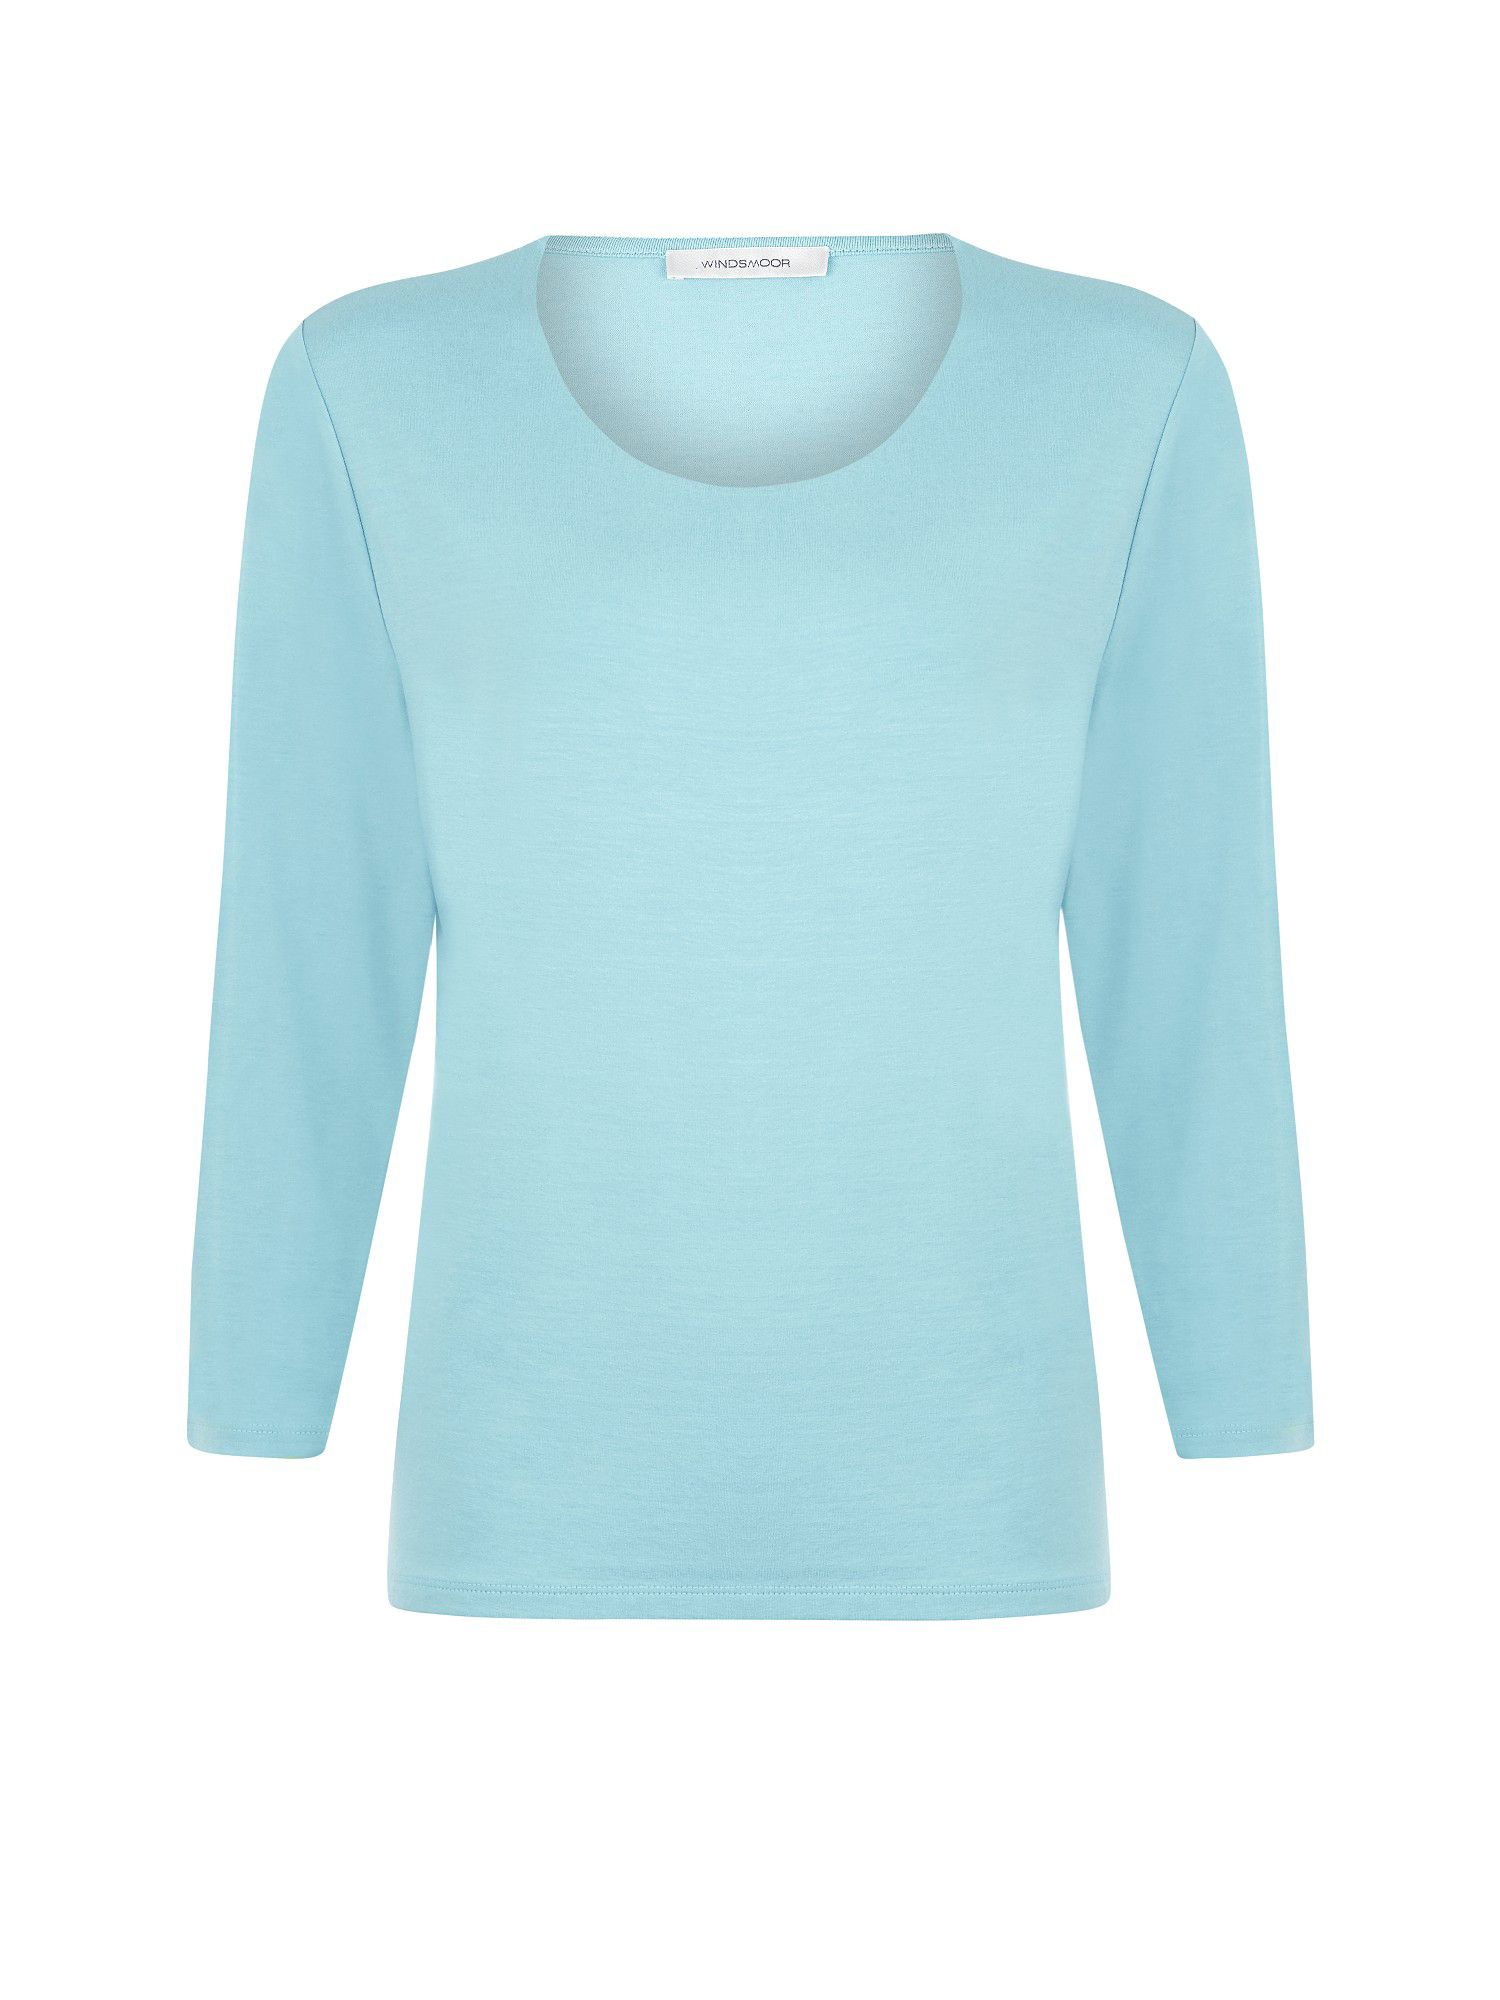 Ice blue scoop neck top